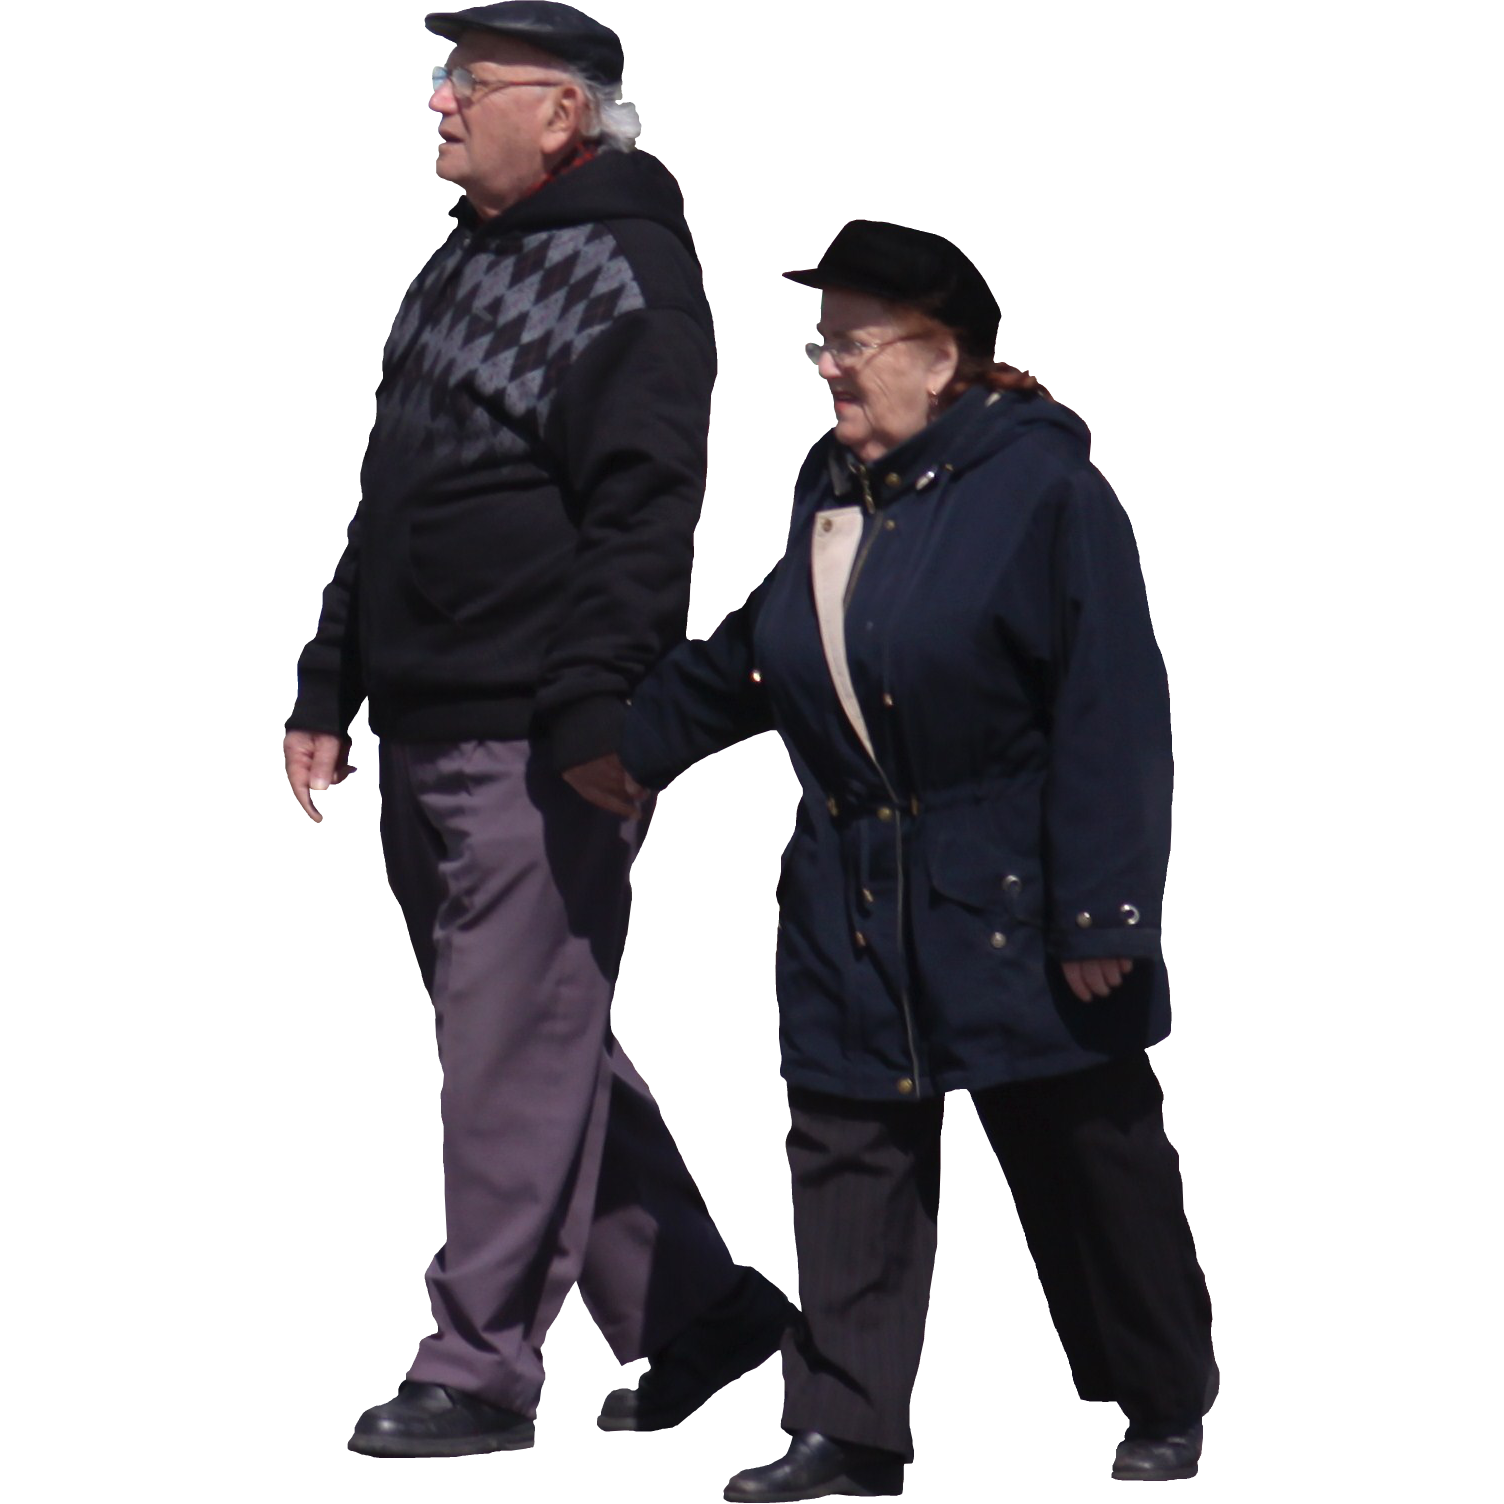 Old People Walking Holding Hands